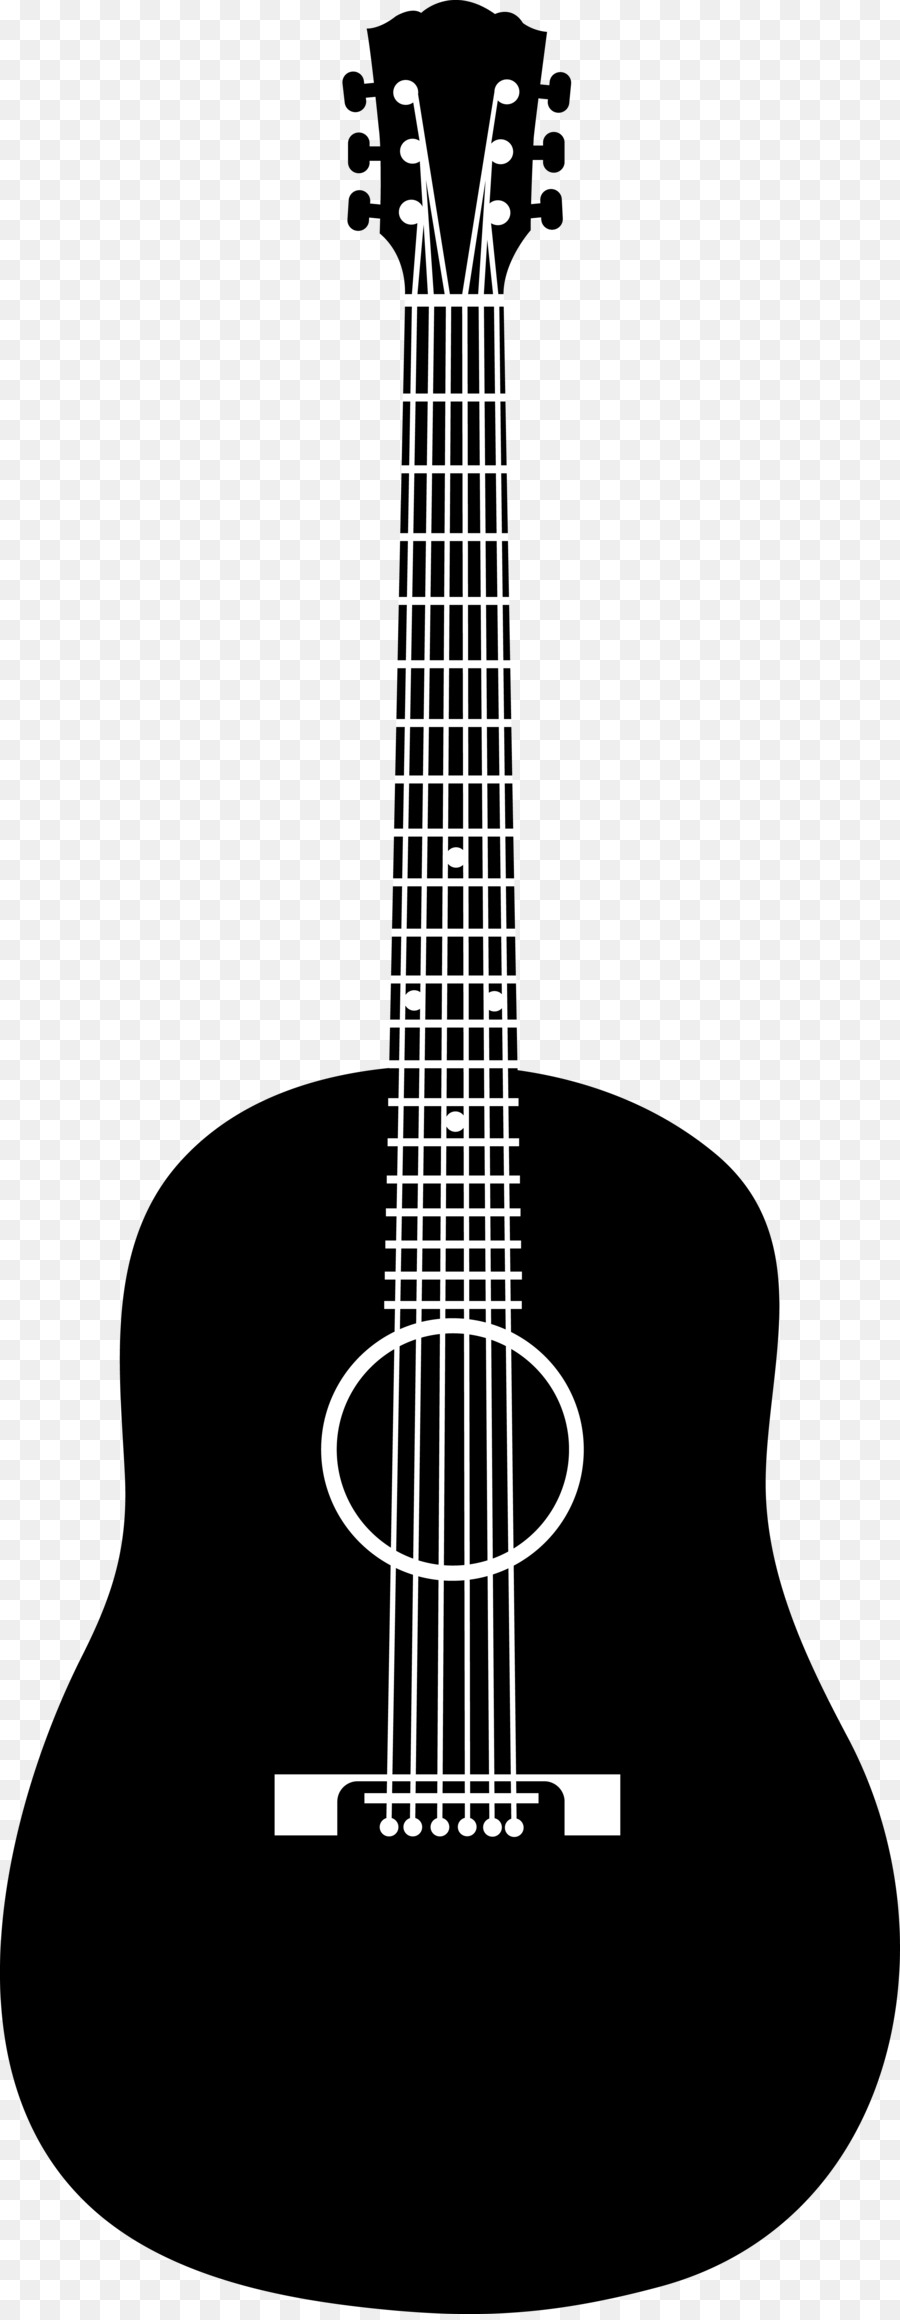 drawing guitar simple guitar drawing at getdrawings free download guitar drawing